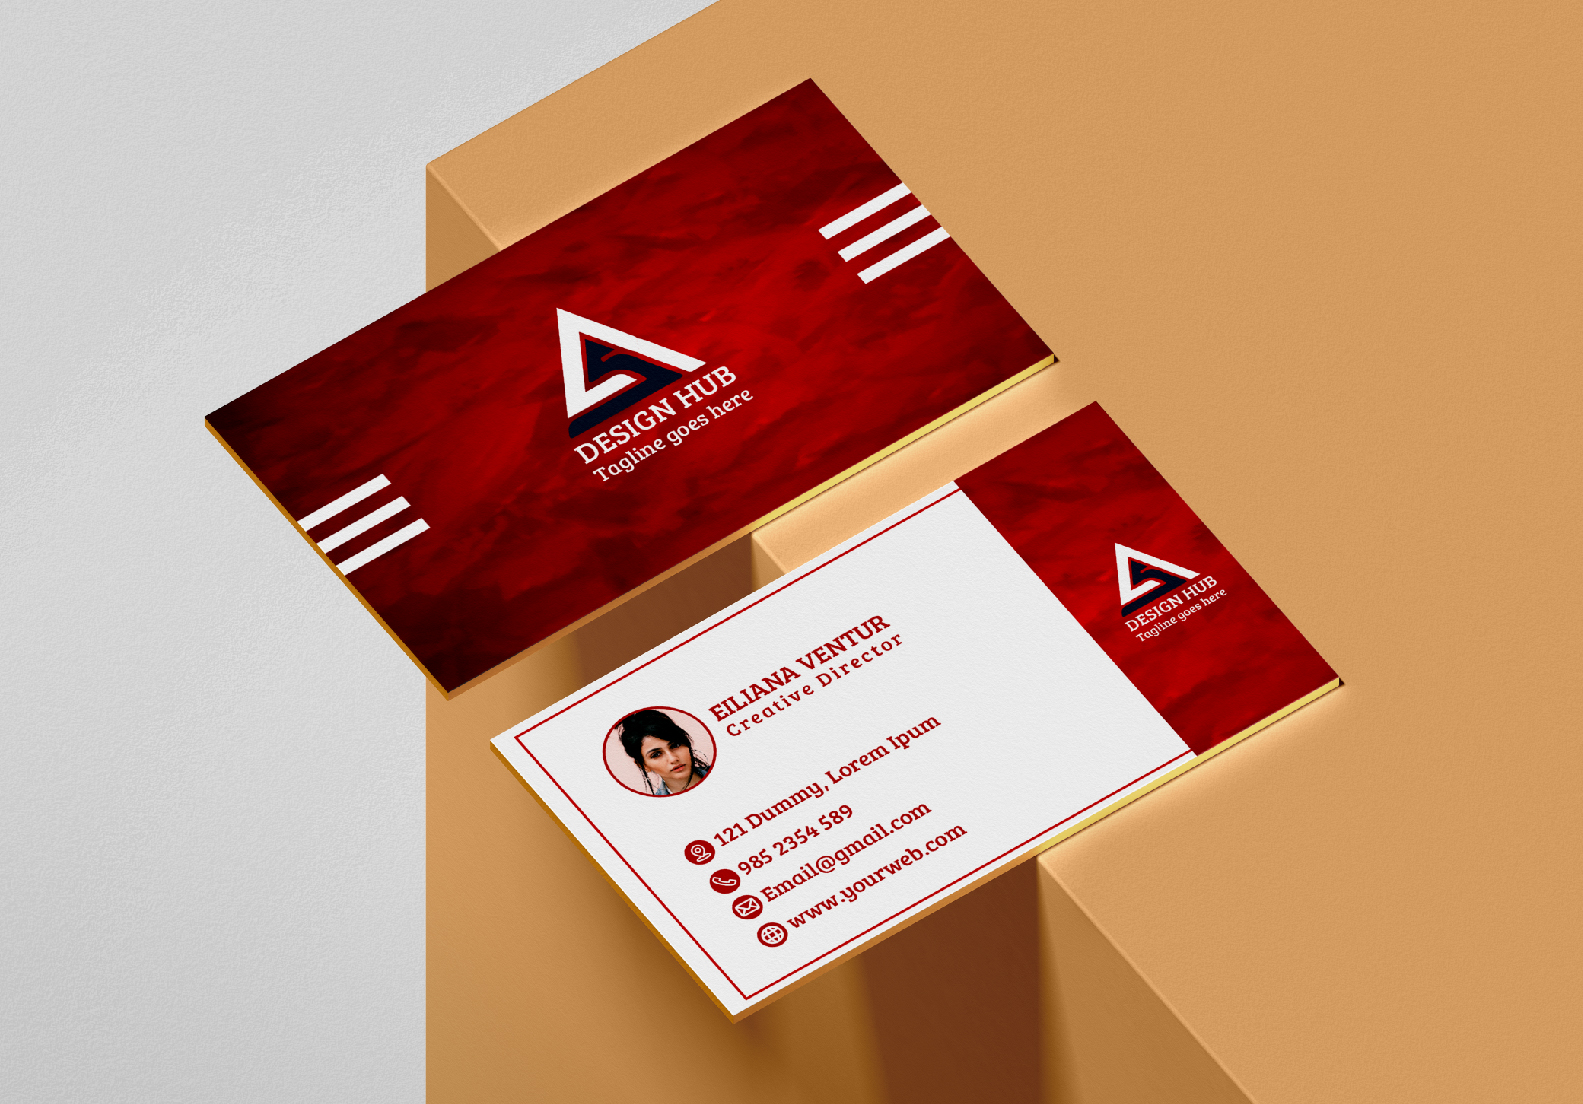 I will design professional and creative business card within 24 hours